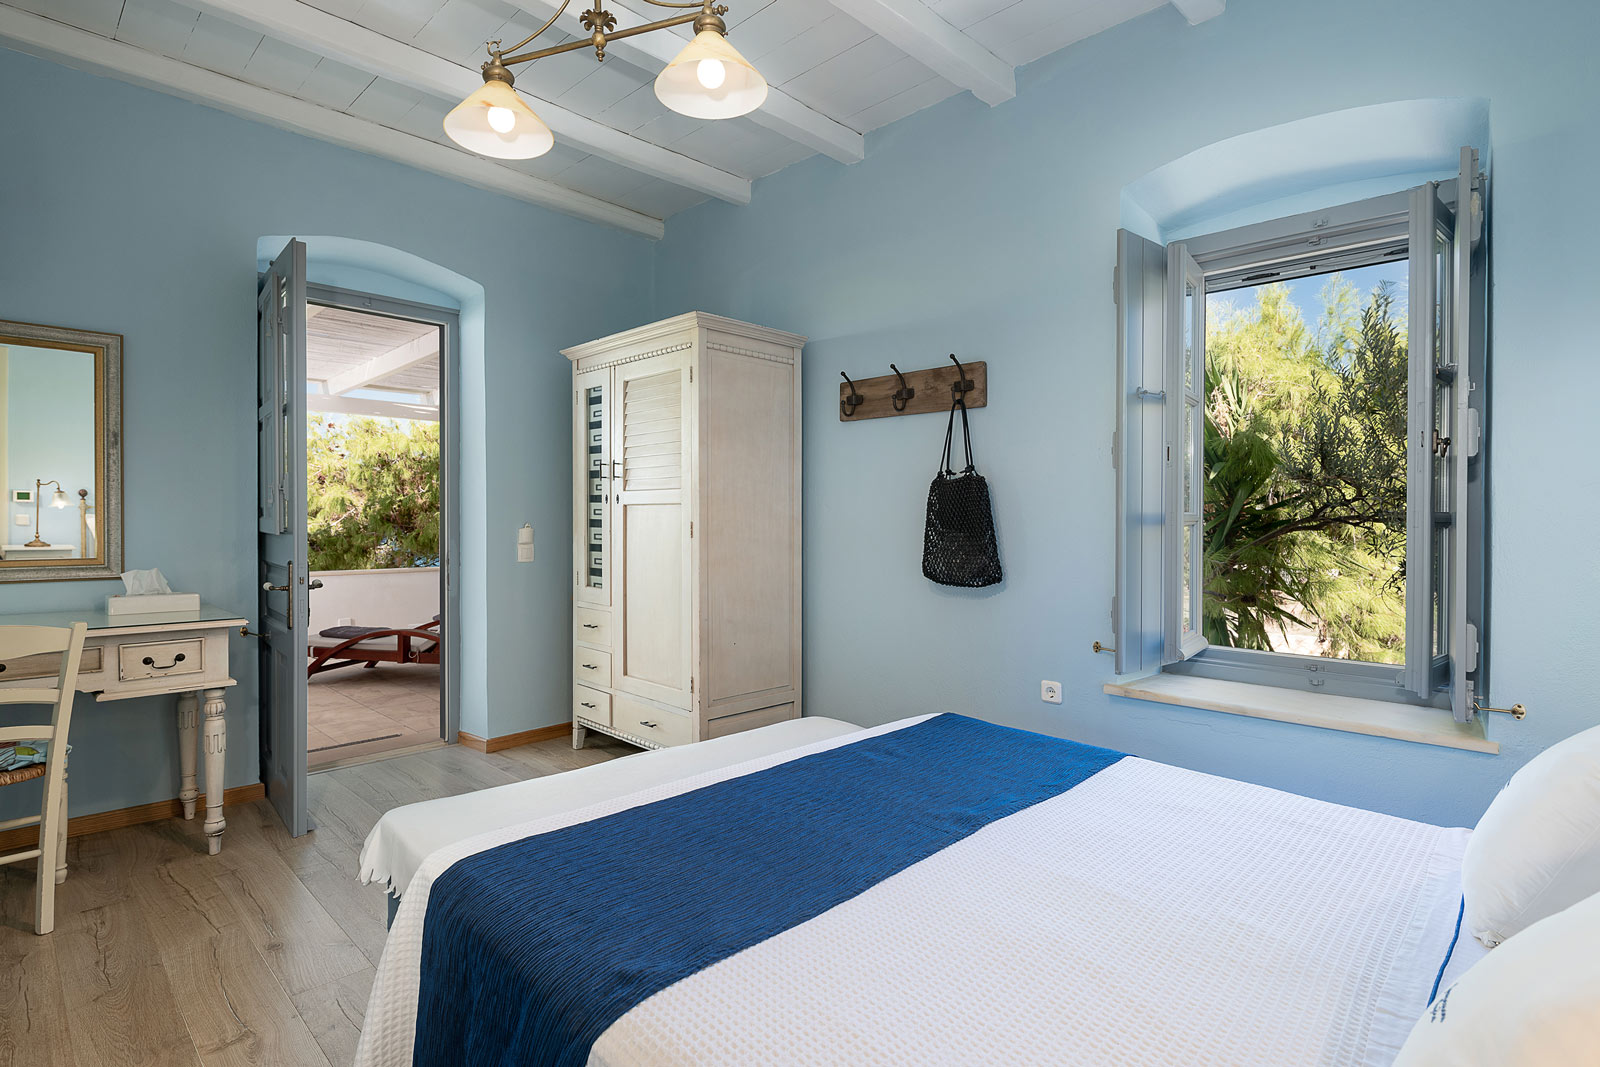 Thalassa suite, bedroom with closet, vanity table, open door to balconi.